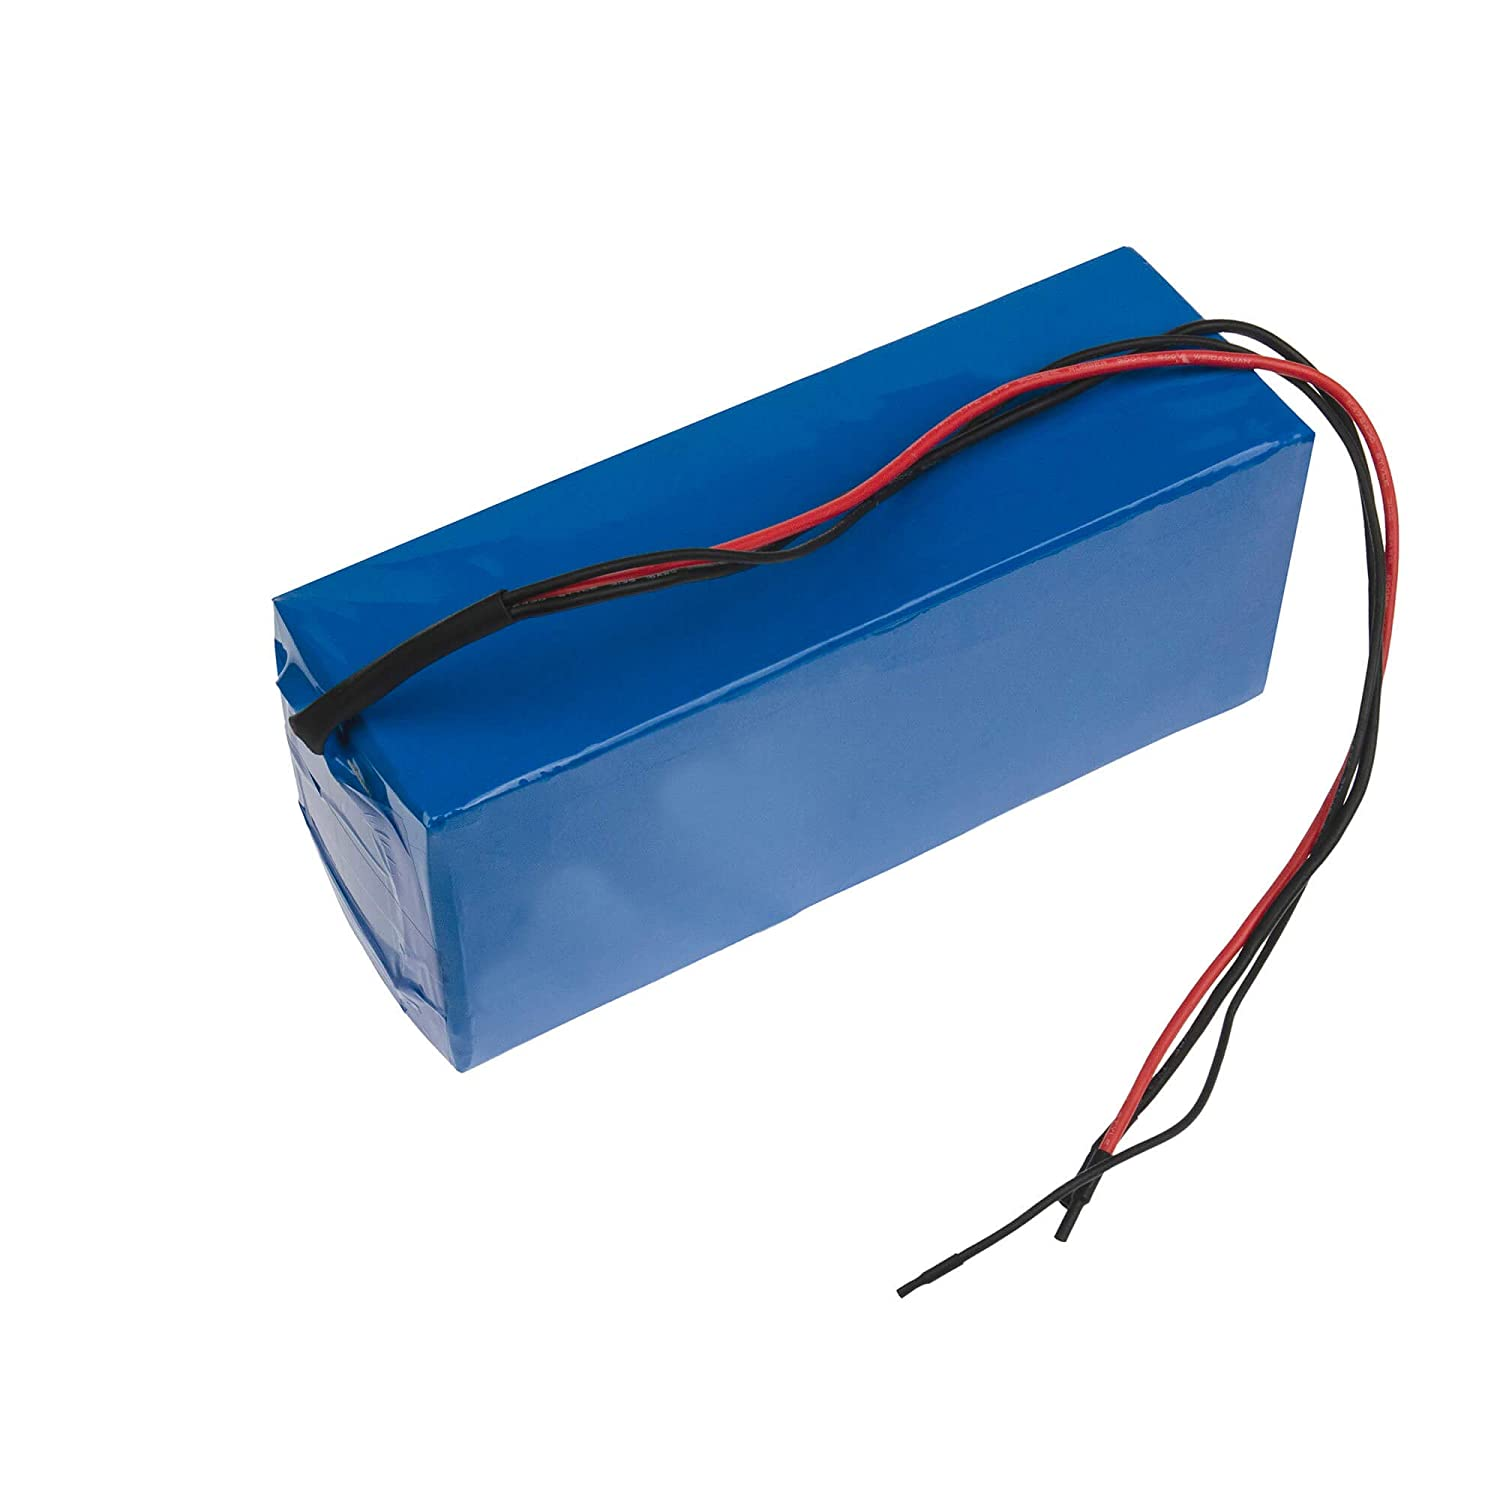 GC/® E-BIKE Battery 48V 17.4Ah 835Wh Pedelec Silverfish with Li-Ion Panasonic Cells and Charger